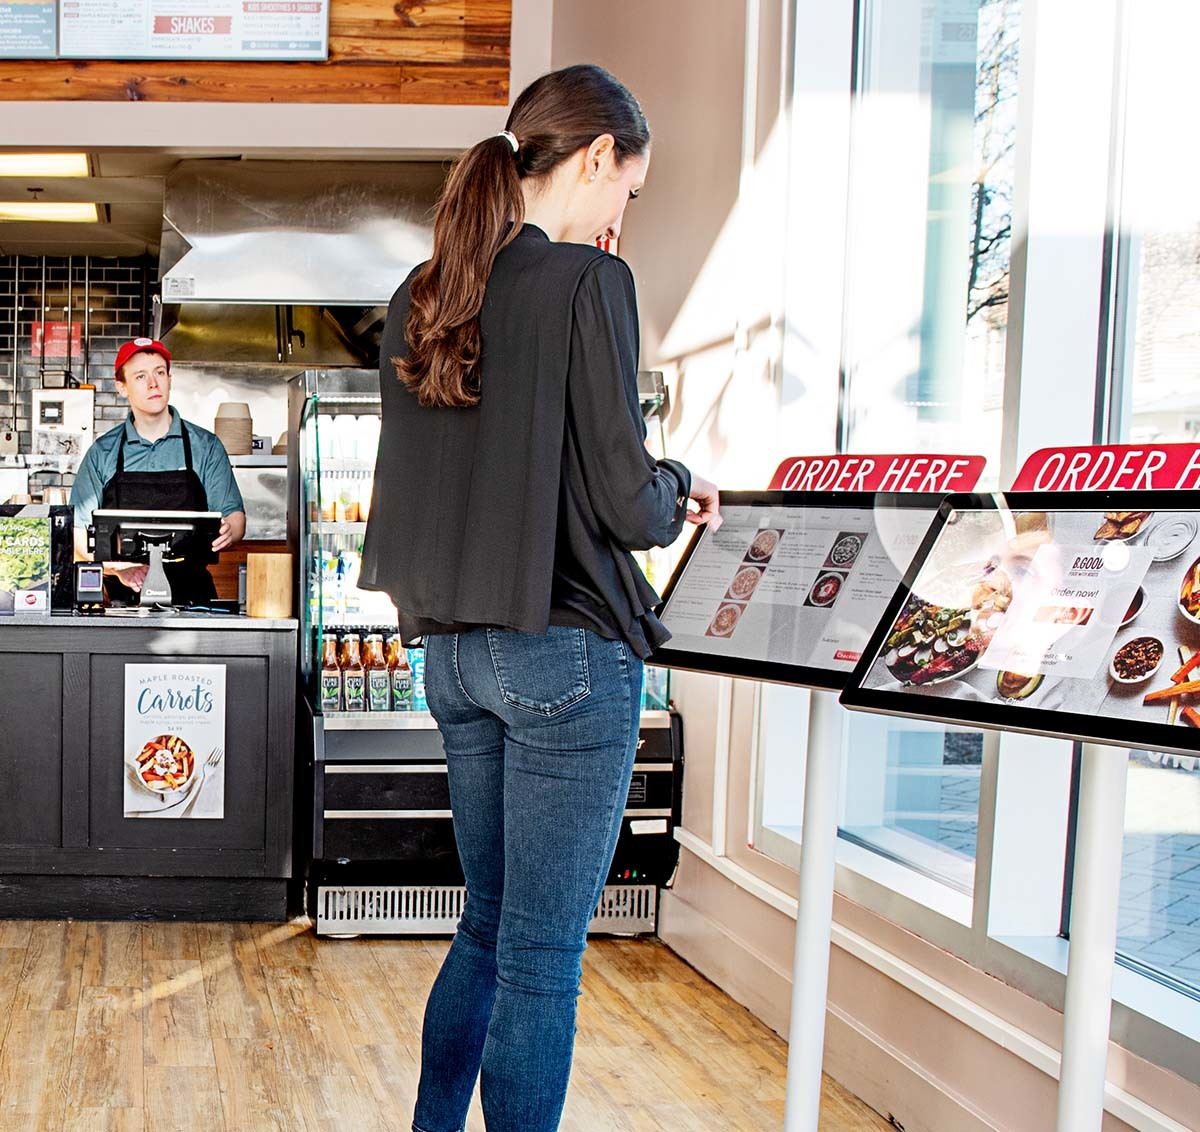 Self-Order Kiosks for Restaurants